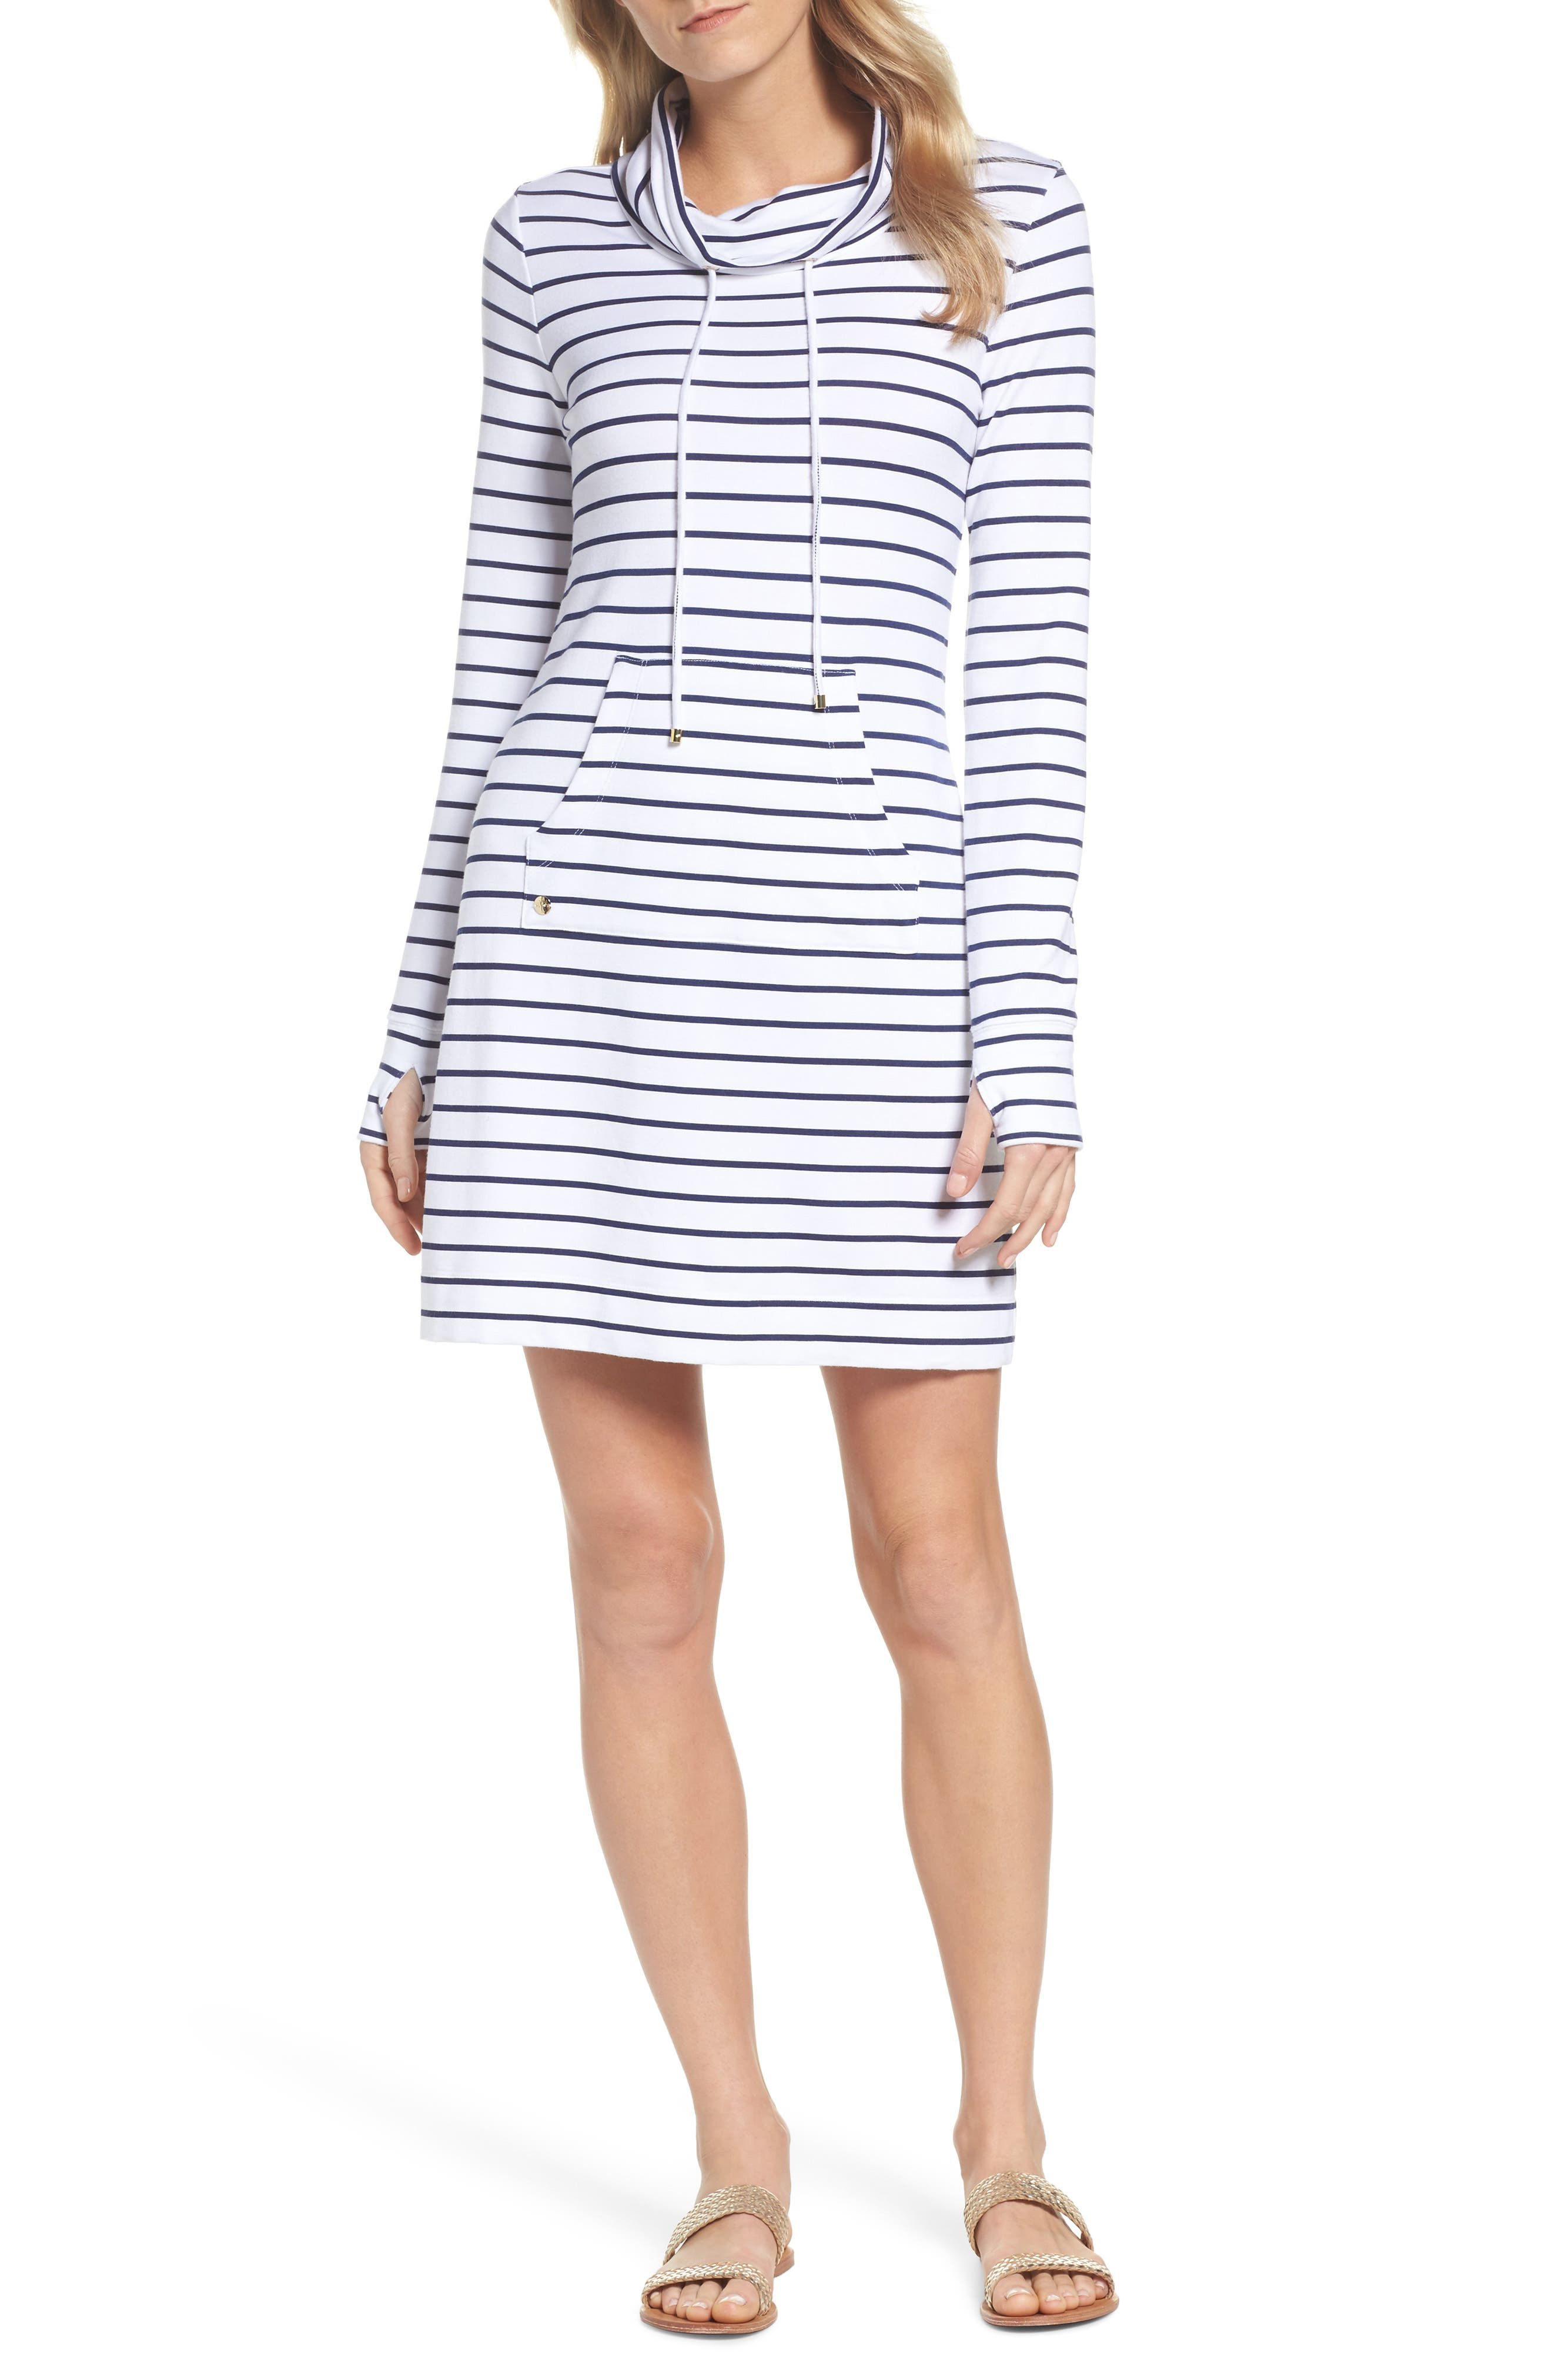 Hilary UPF 50+ Dress,                         Main,                         color, Bright Navy Mystic Stripe